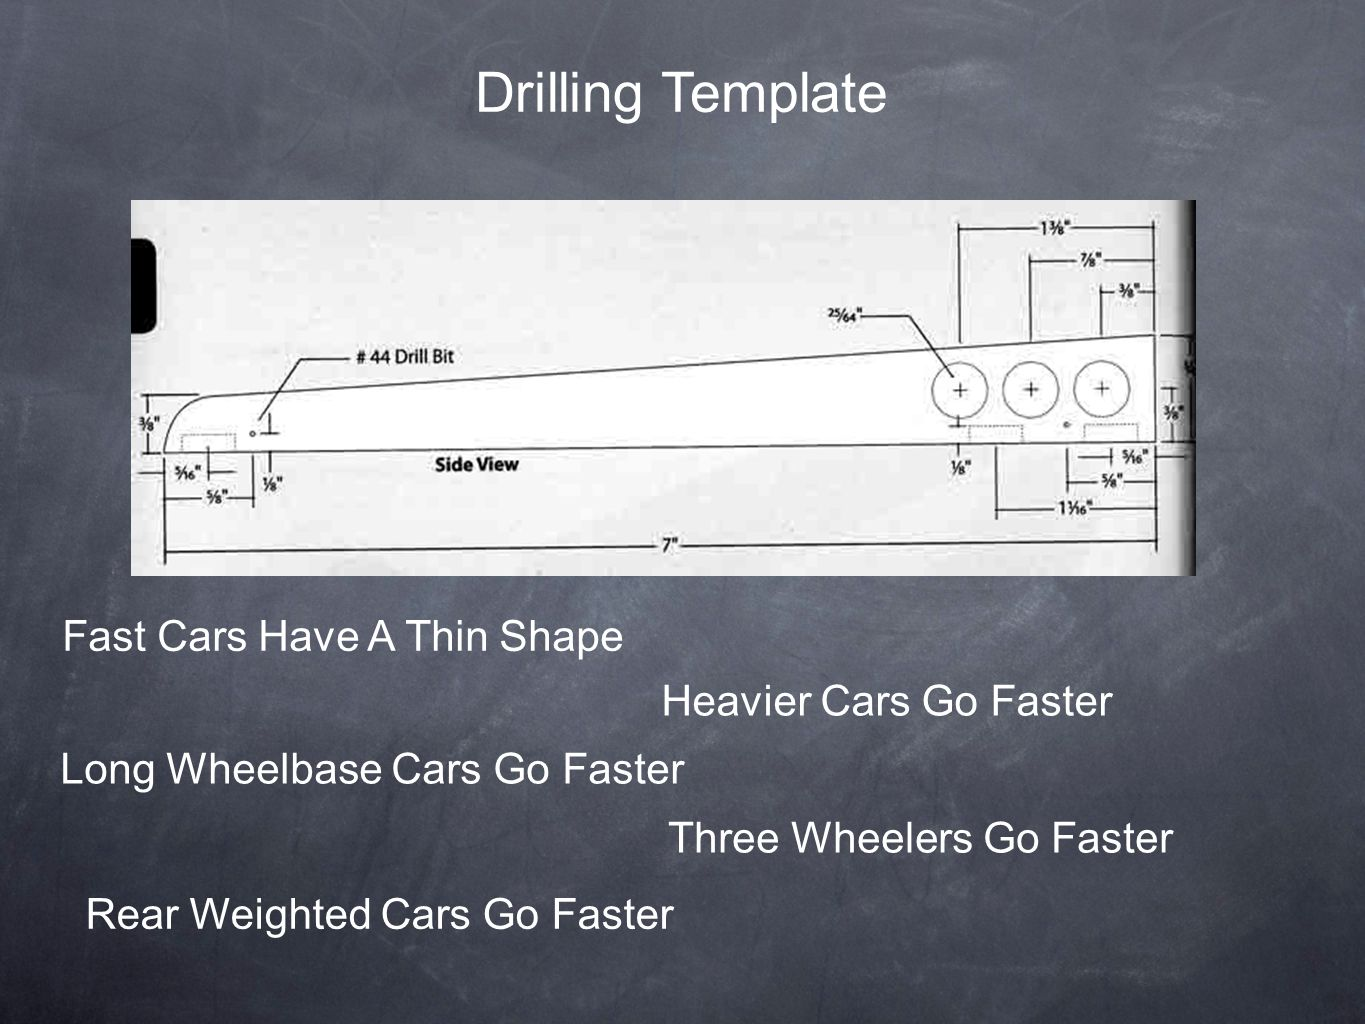 Drilling Template Fast Cars Have A Thin Shape Heavier Cars Go Faster Long Wheelbase Cars Go Faster Three Wheelers Go Faster Rear Weighted Cars Go Fast